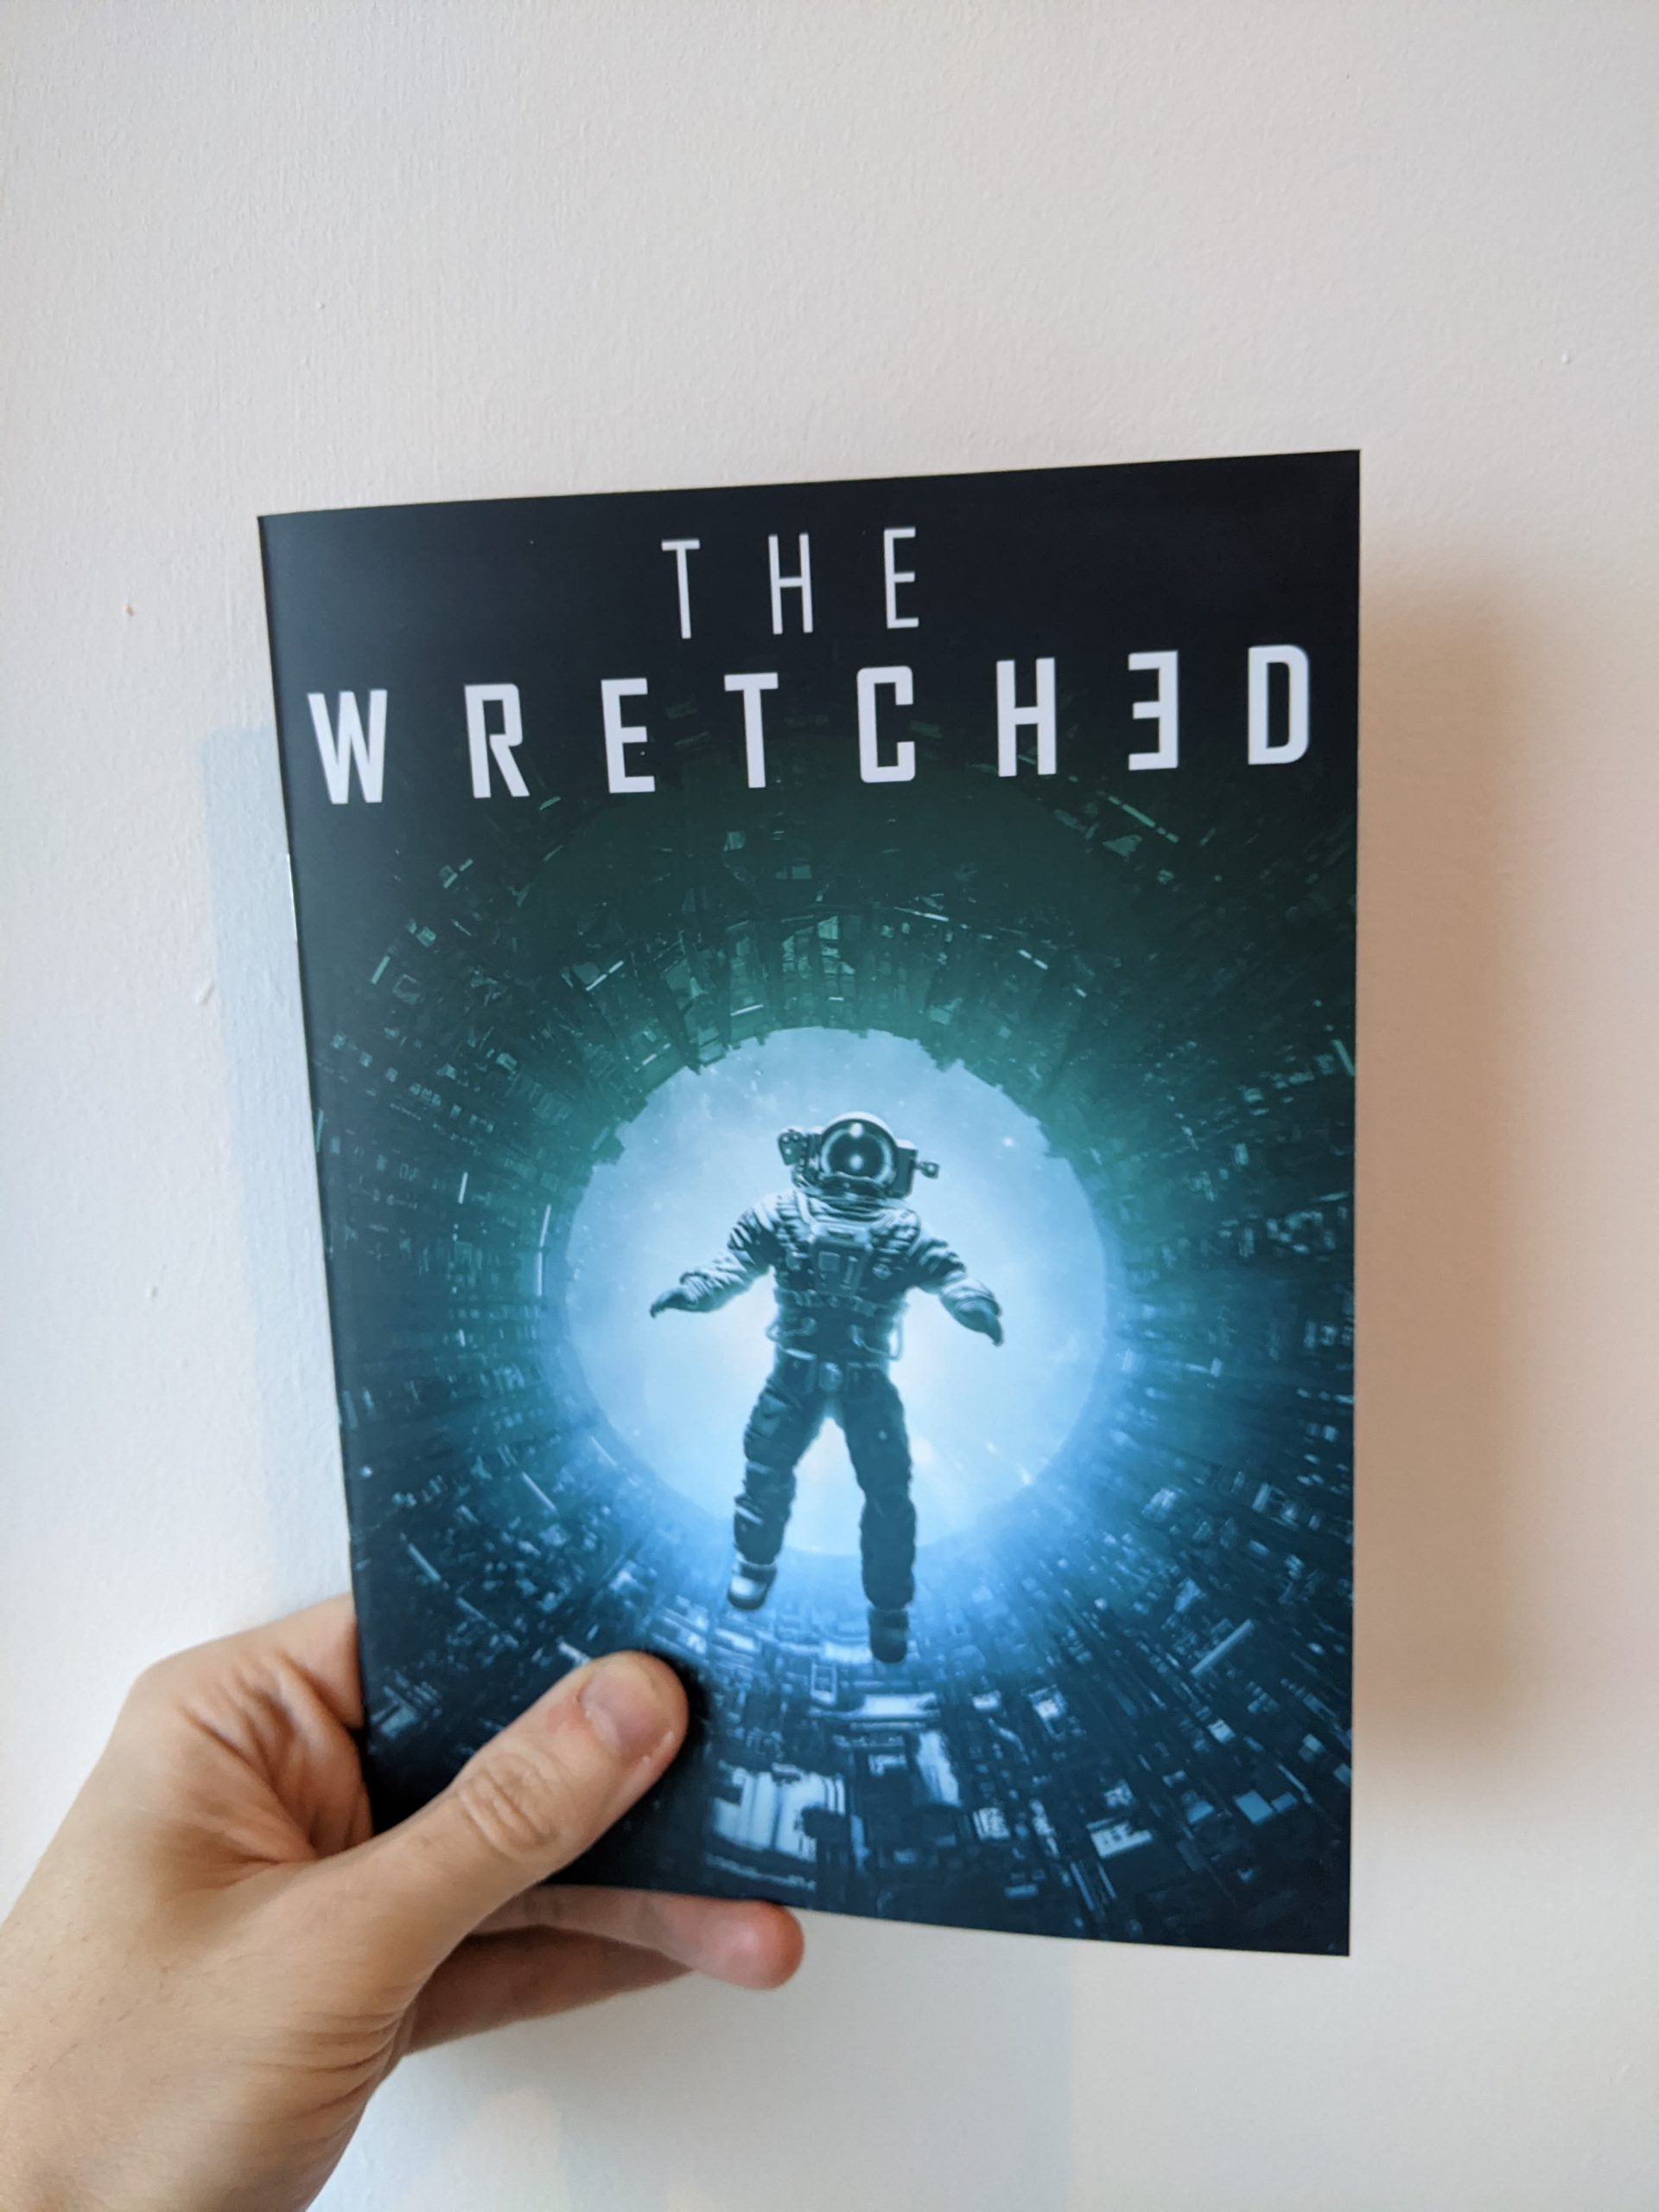 "A hand holds an A5 zine against a white background. The title on the zine reads ""The Wretched"". On the cover, a silhouette of an astronaut falls backwards into a glowing green and blue void in the middle of a maze of industrial pipework."